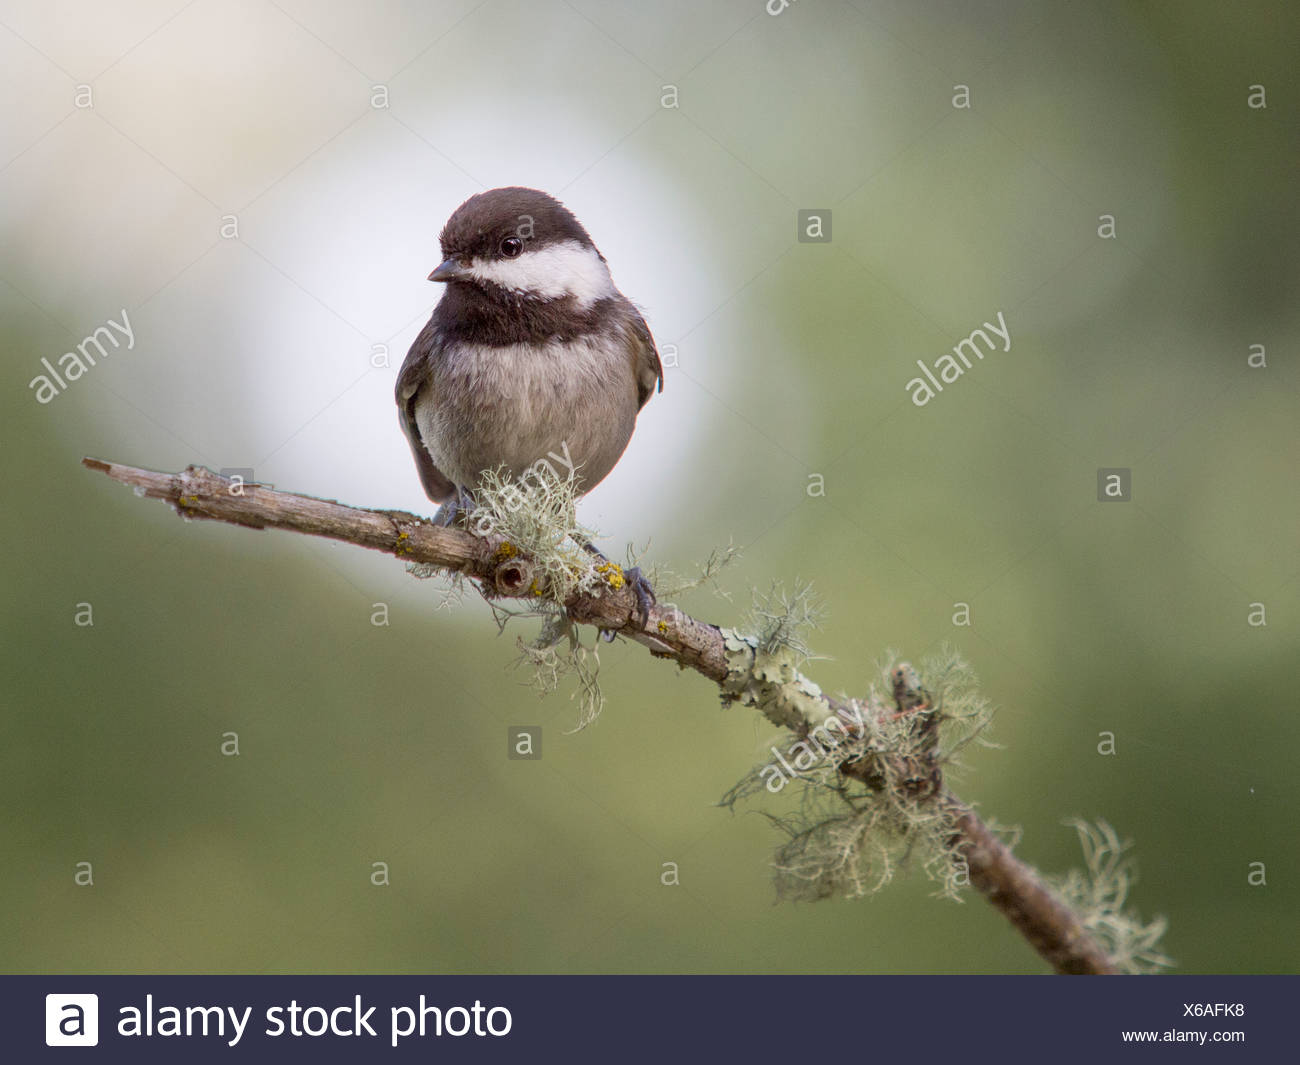 Chestnut-backed chickadee, Poecile rufescens, Forest Knolls, California, USA - Stock Image